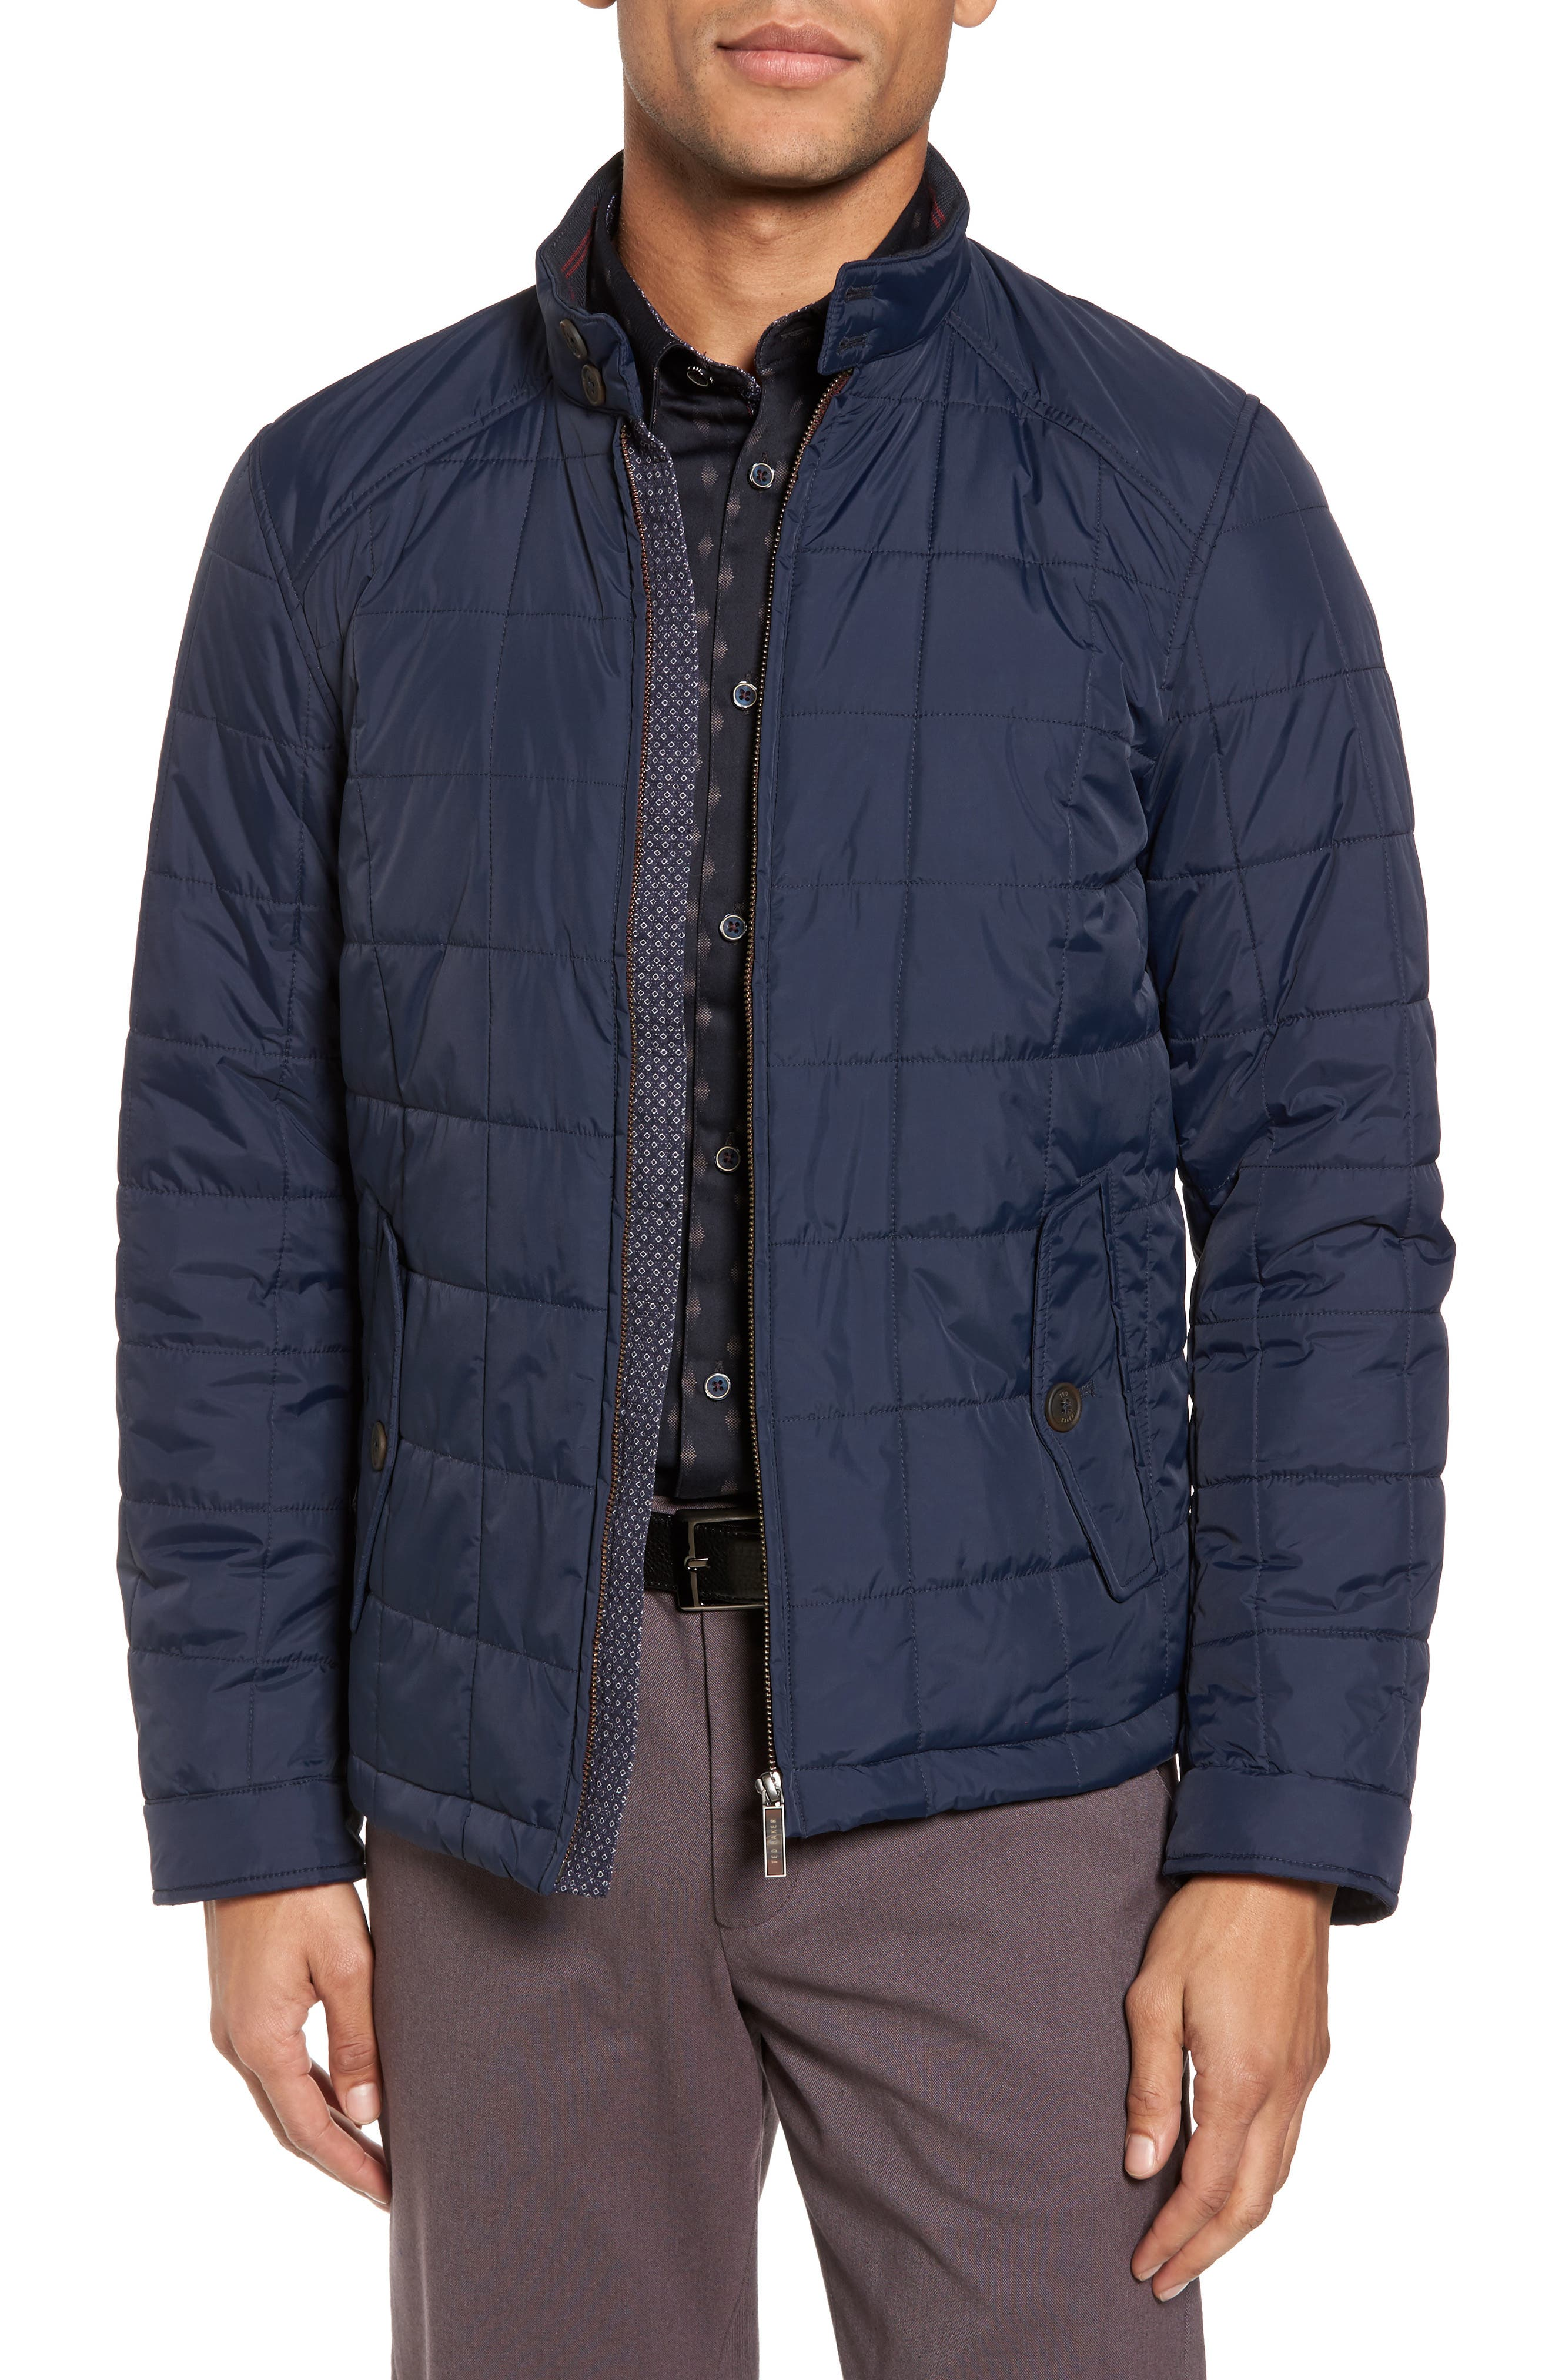 Alees Trim Fit Quilted Jacket,                         Main,                         color, Navy